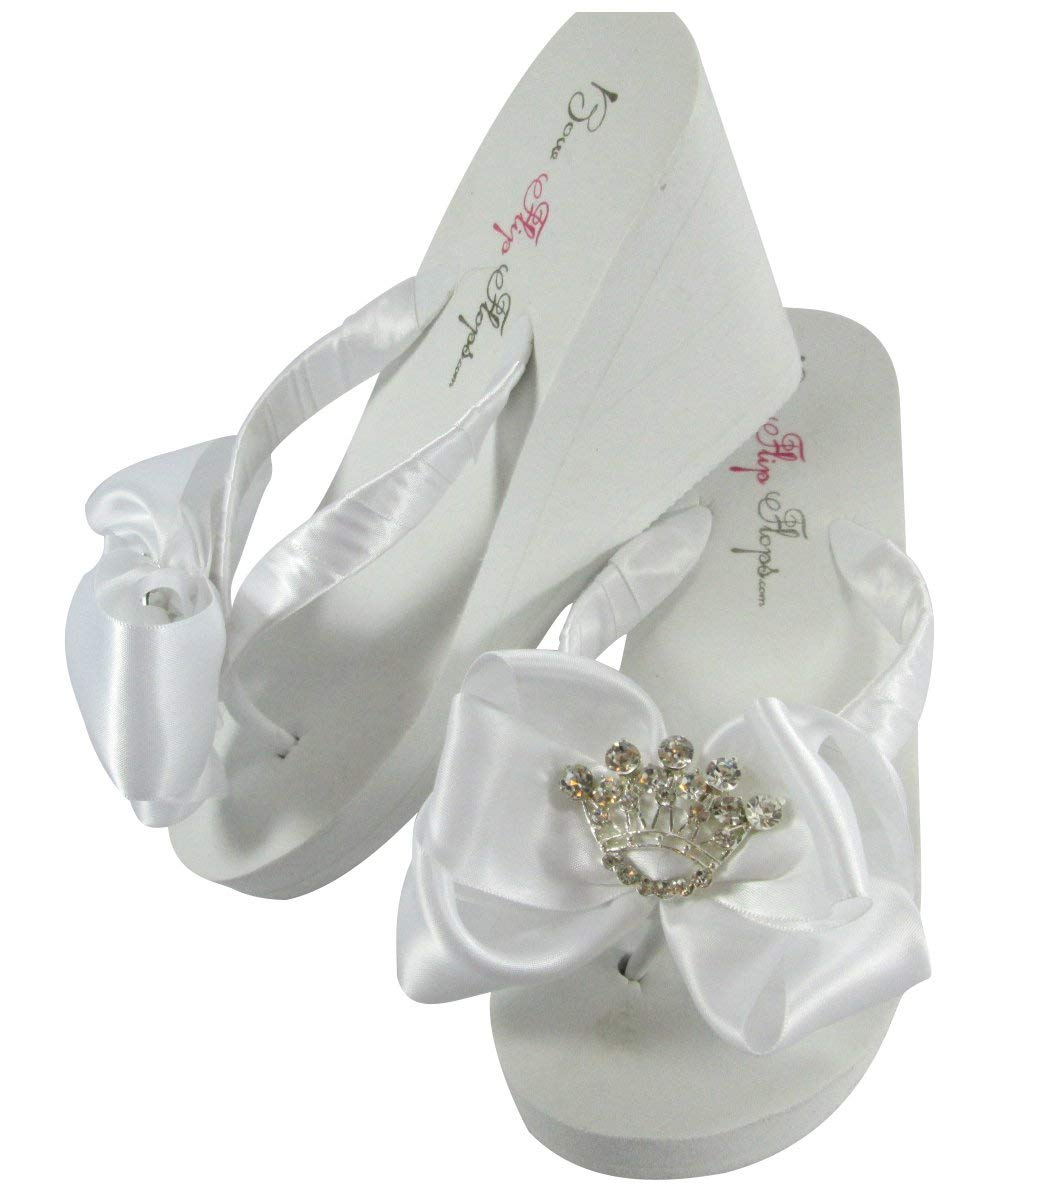 e9b9f84bbe0457 Get Quotations · Tiara Princess White or Ivory Wedge Bow Flip Flops - Flat  or Heel